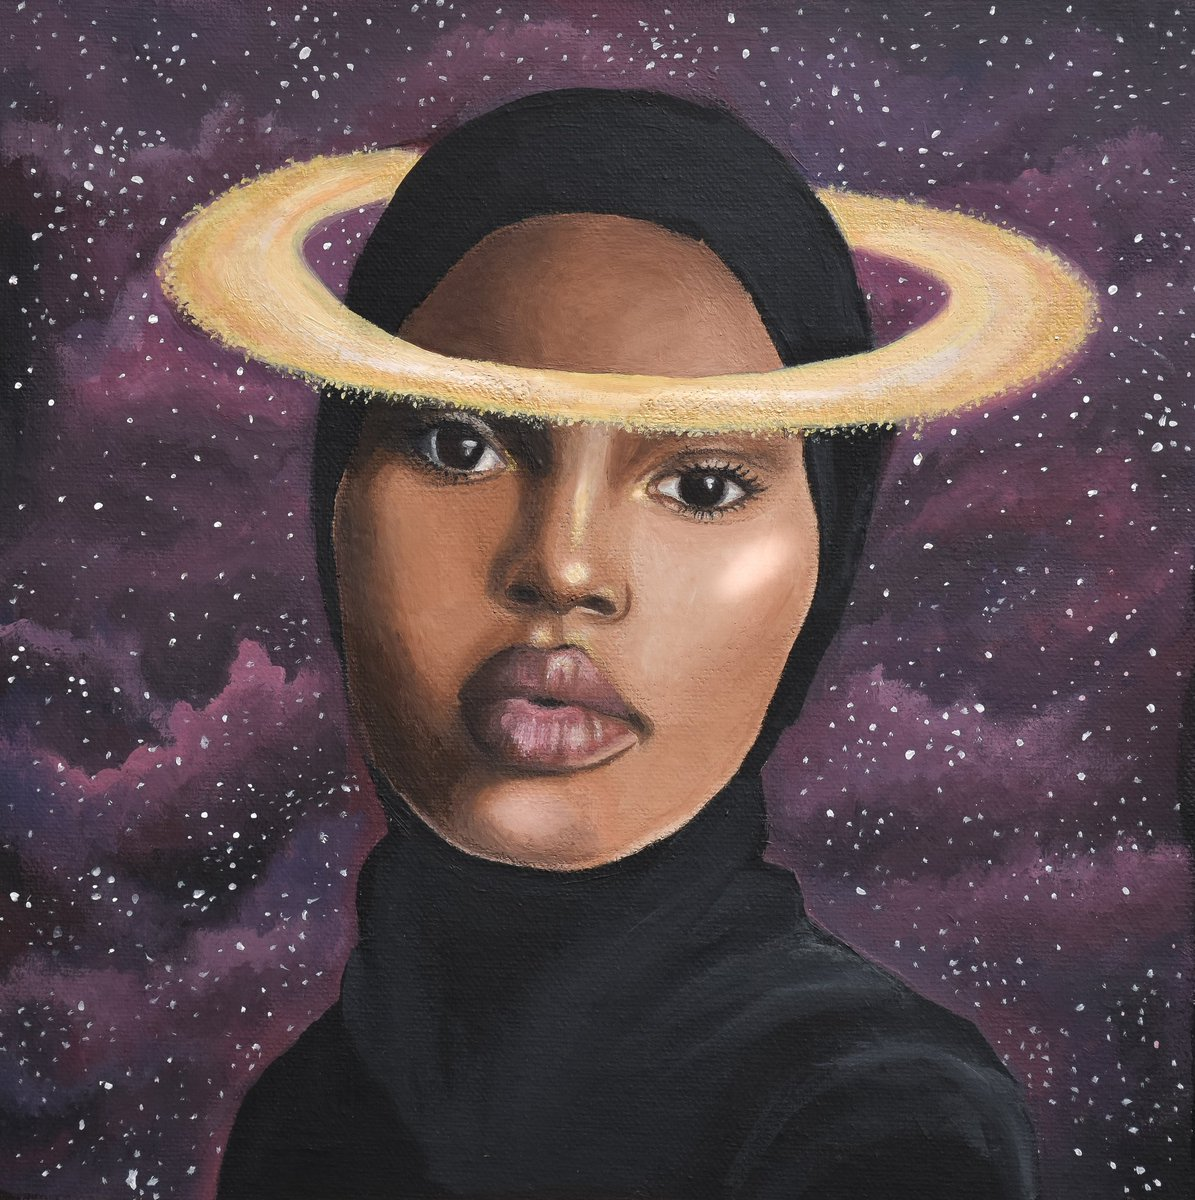 """Artworks  'Orbit' by ©Amina Pagliari.  Dr Hamid > ©Mutiny Projects (Simon Poulter, Sophie Mellor & Marcus Romer).   Artists will take part in tomorrow's """"Embracing Diversity"""" event.  Follow MKIAC for further updates.  #diversity #BAME #NHSheroes #art #COVID19 #BLM #inspiration https://t.co/NADLQFo2Hq"""